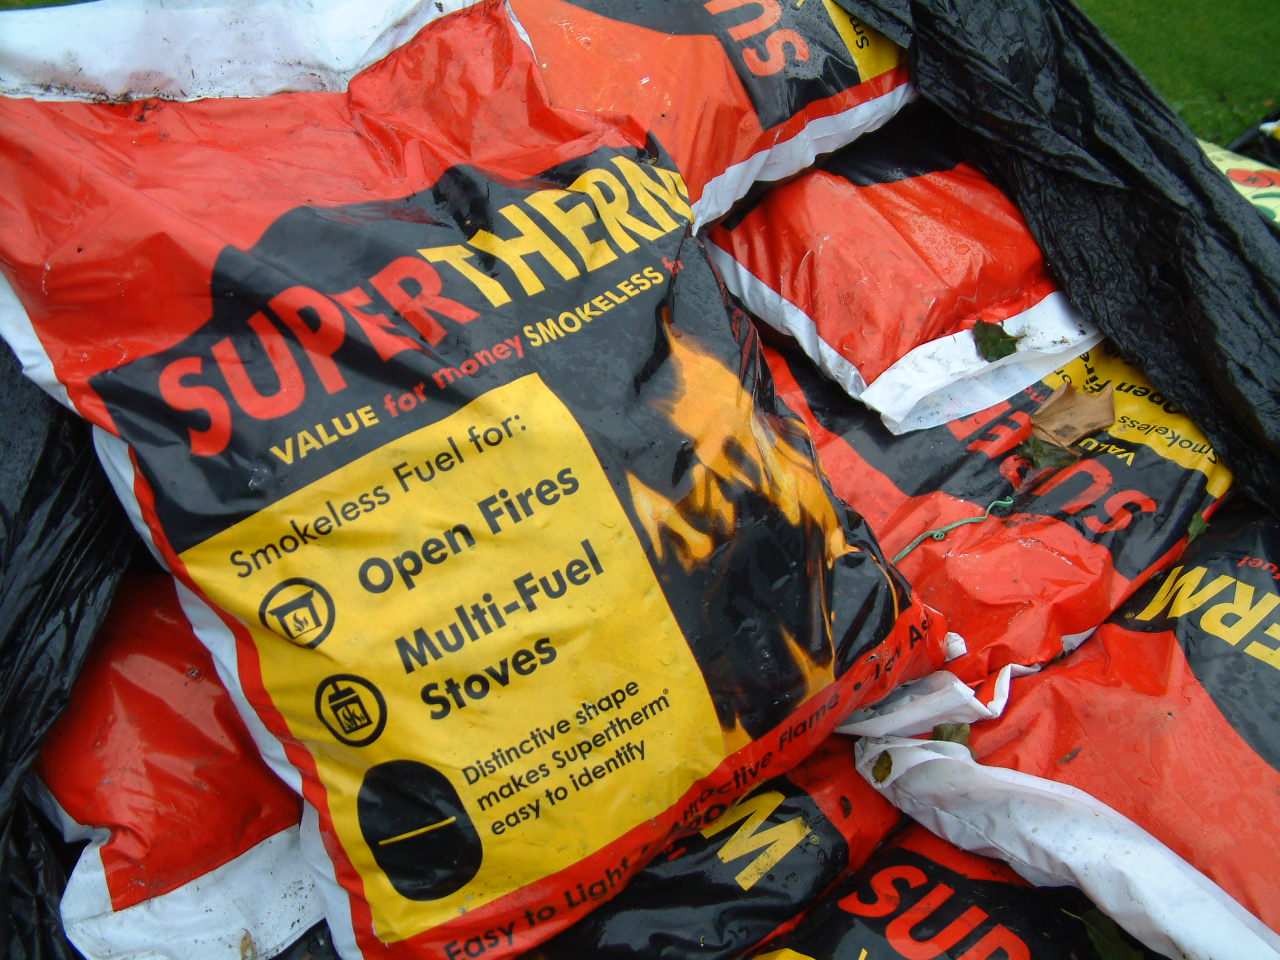 20kg smokeless coal £7.50. House coal also available 20kg £6. If you buy 20 or more bags free delivery to the warrington area!